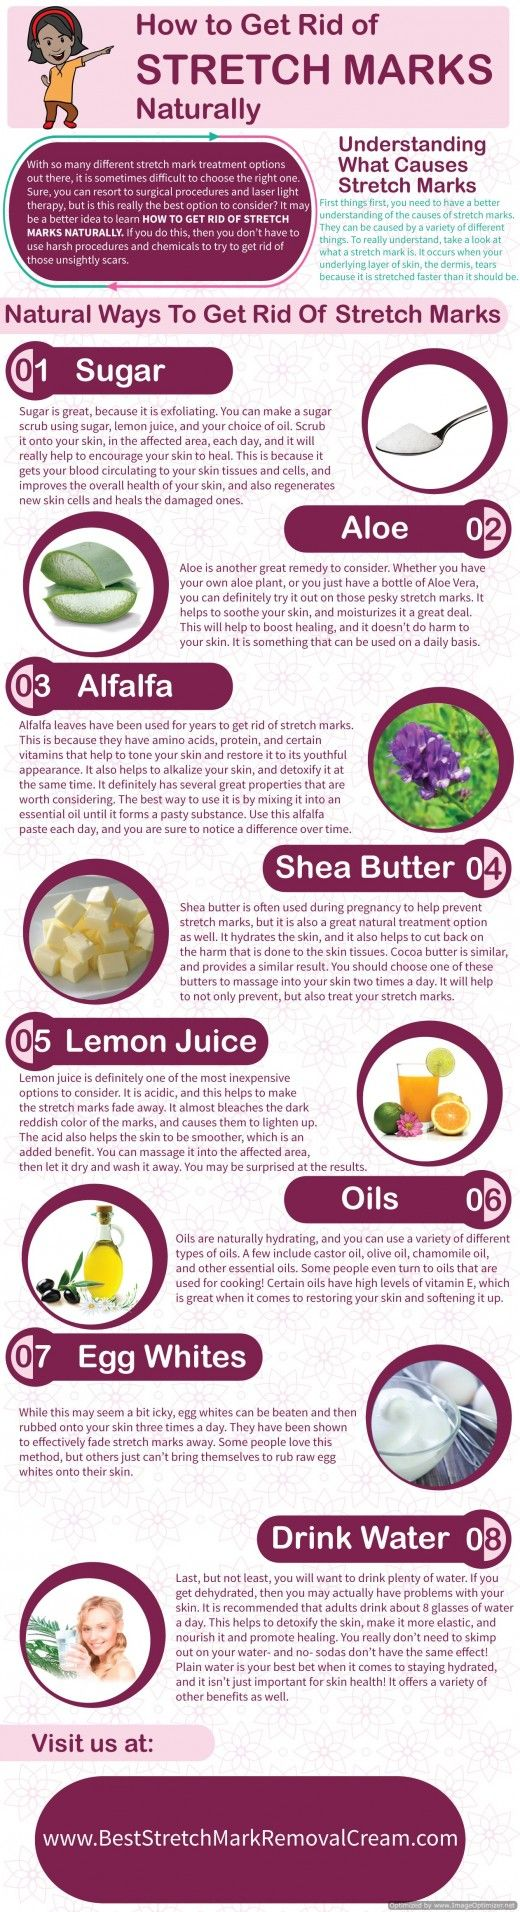 8 Ways to Get Rid of Stretch Marks Naturally ...